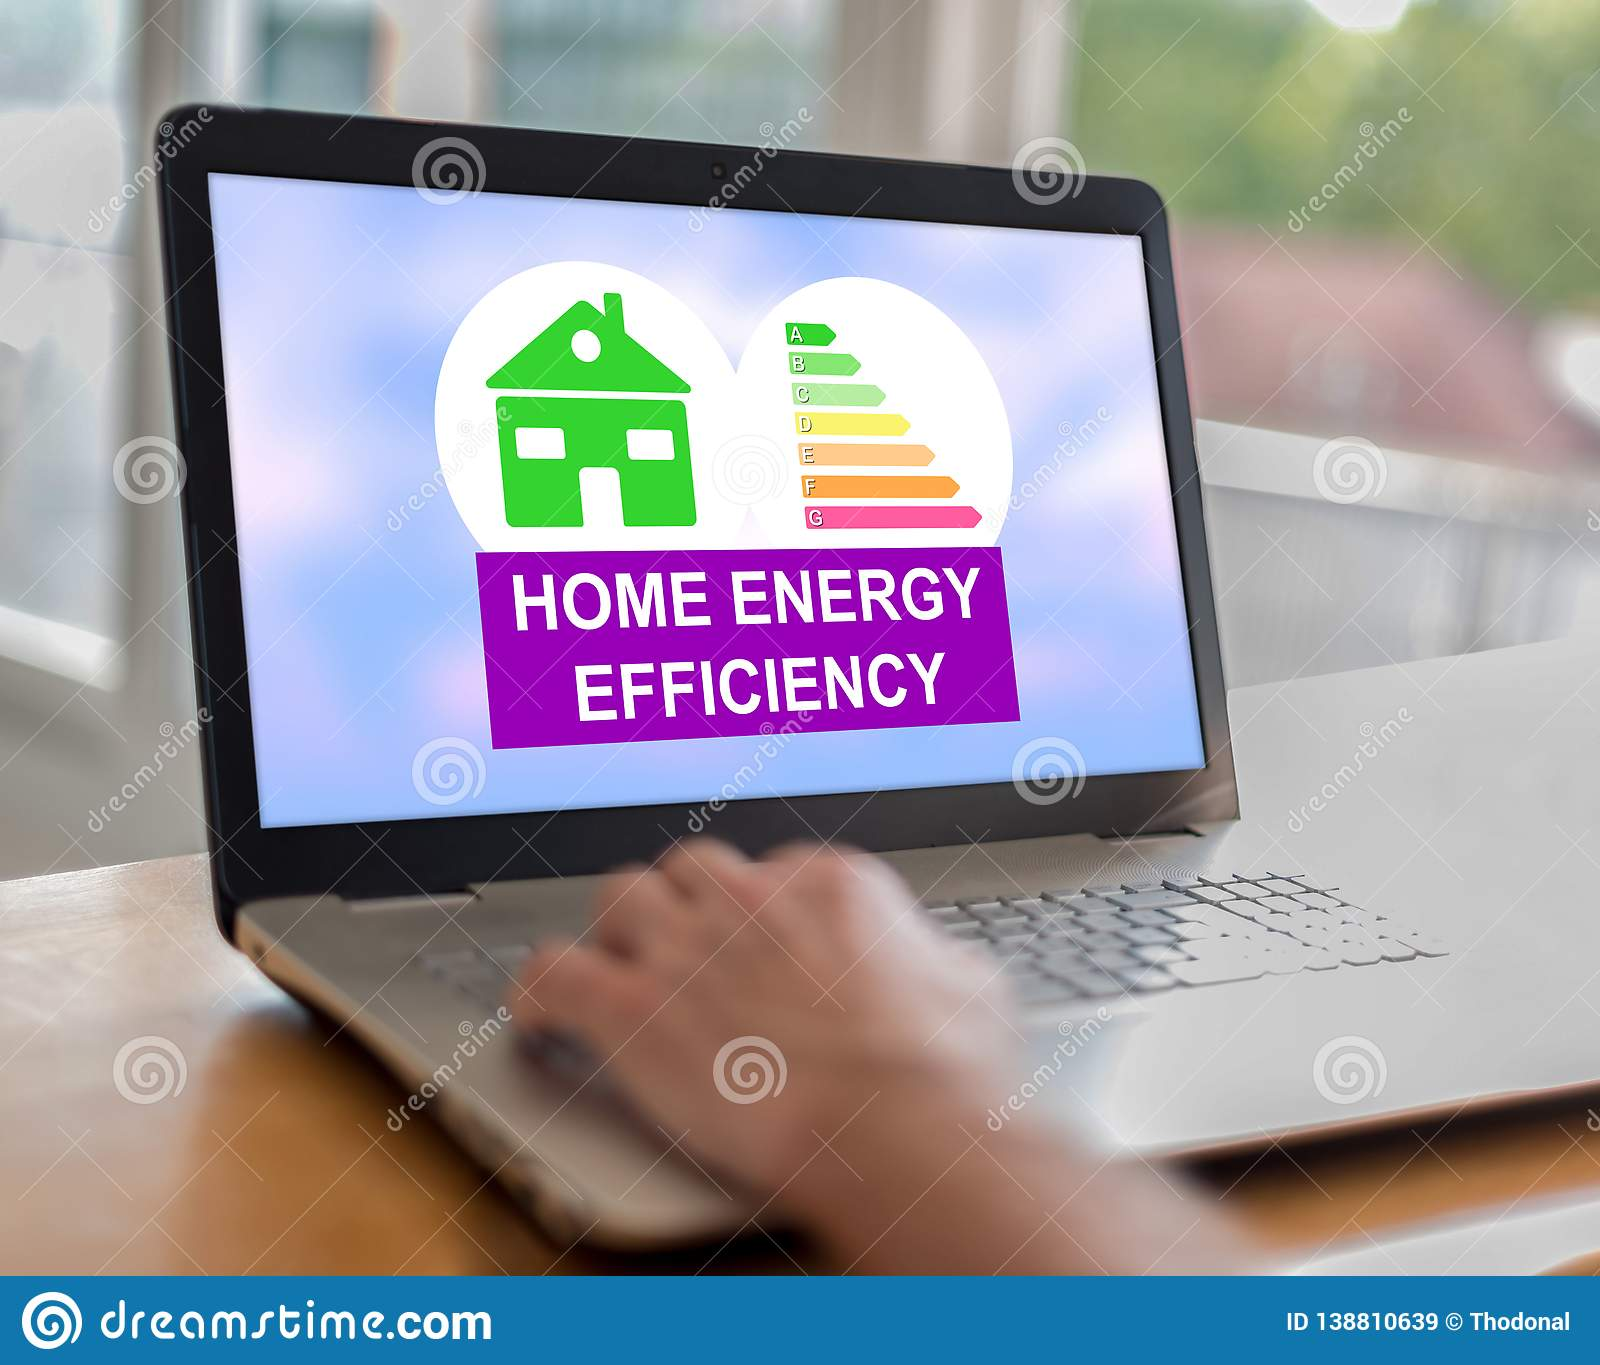 Home energy efficiency concept on a laptop